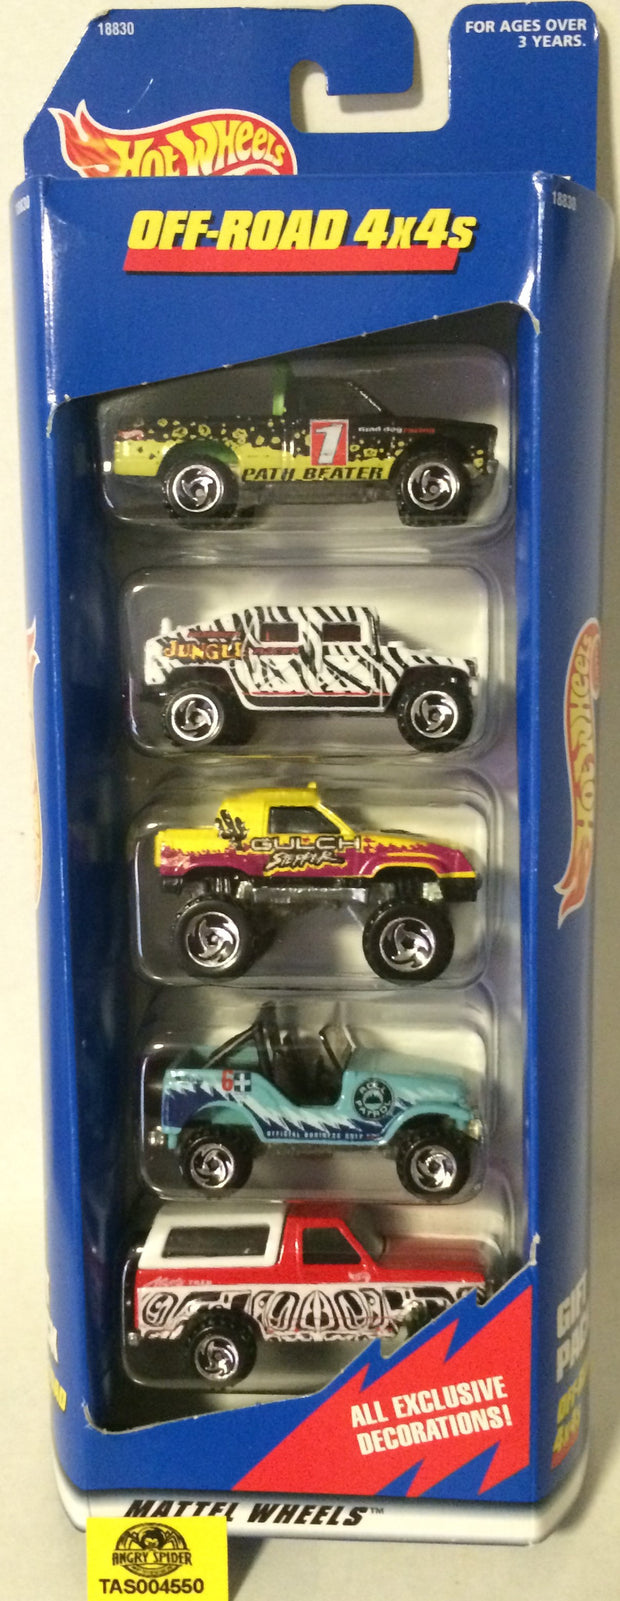 (TAS004550) - 1997 Mattel Hot Wheels Off-Road 4x4s Gift Pack Die-Cast, , Trucks & Cars, Hot Wheels, The Angry Spider Vintage Toys & Collectibles Store